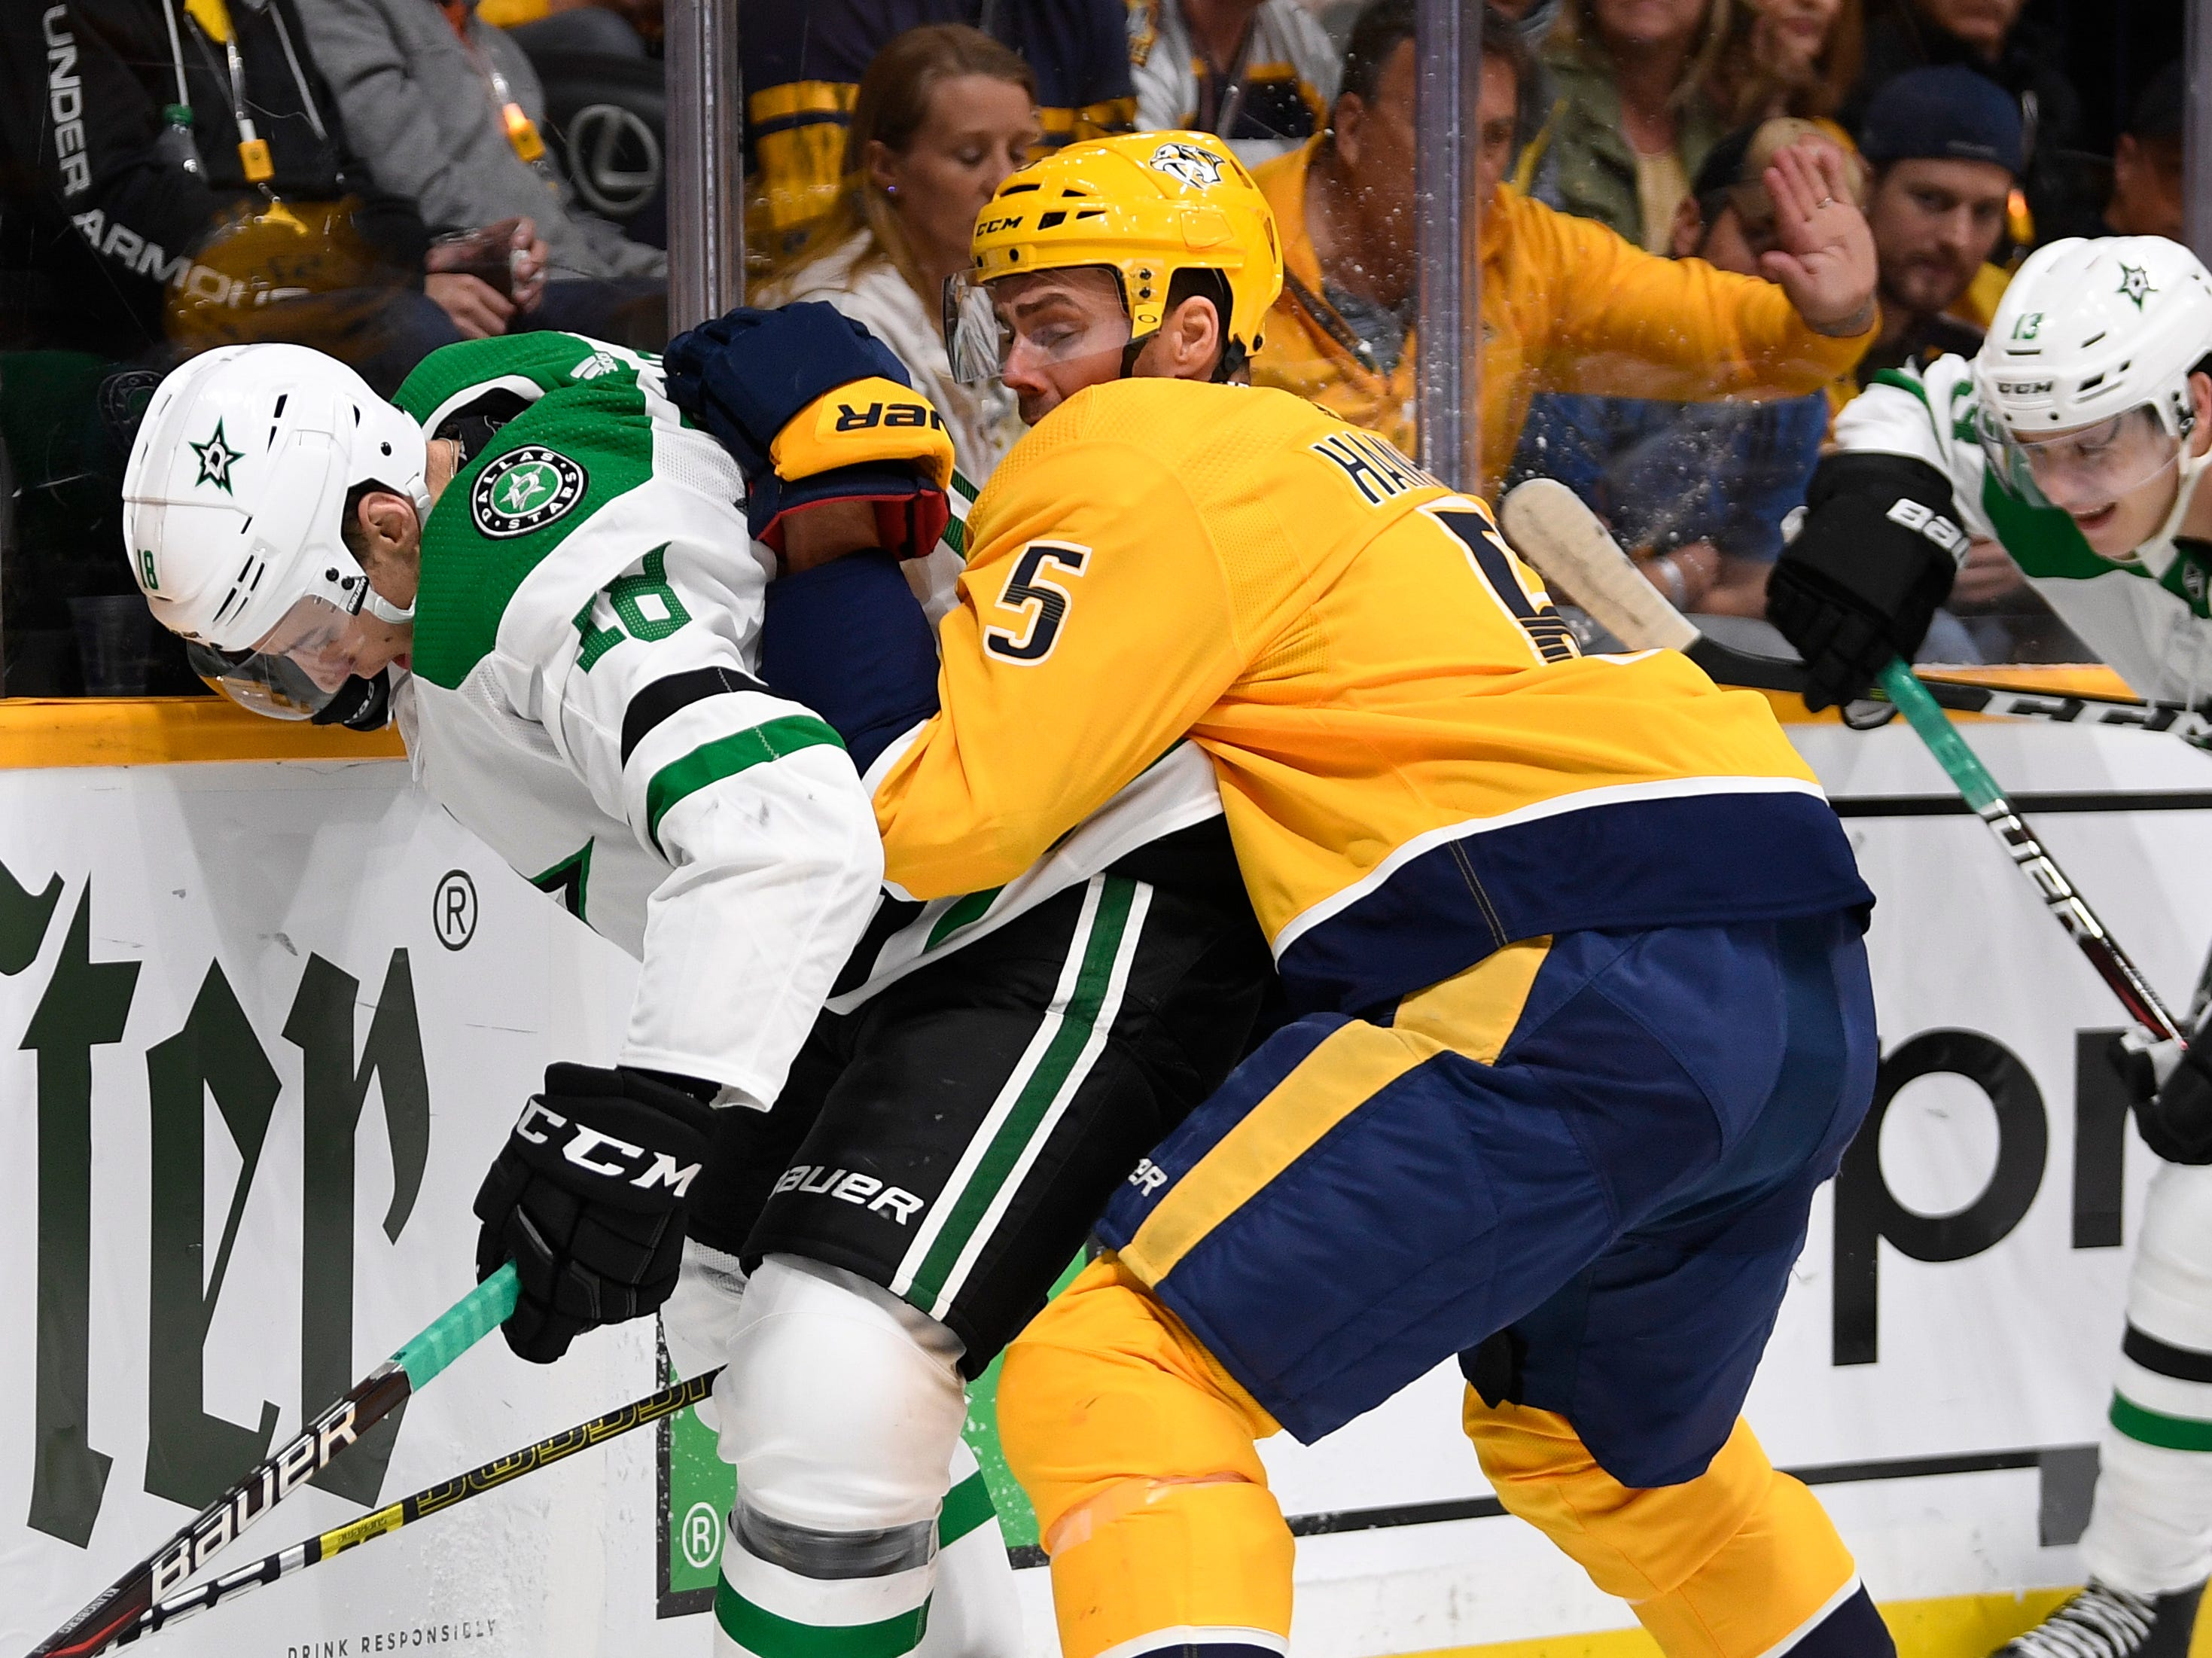 Nashville Predators defenseman Dan Hamhuis (5) and Dallas Stars center Tyler Pitlick (18) battle for the puck along the boards during the second period of the divisional semifinal game at Bridgestone Arena in Nashville, Tenn., Wednesday, April 10, 2019.